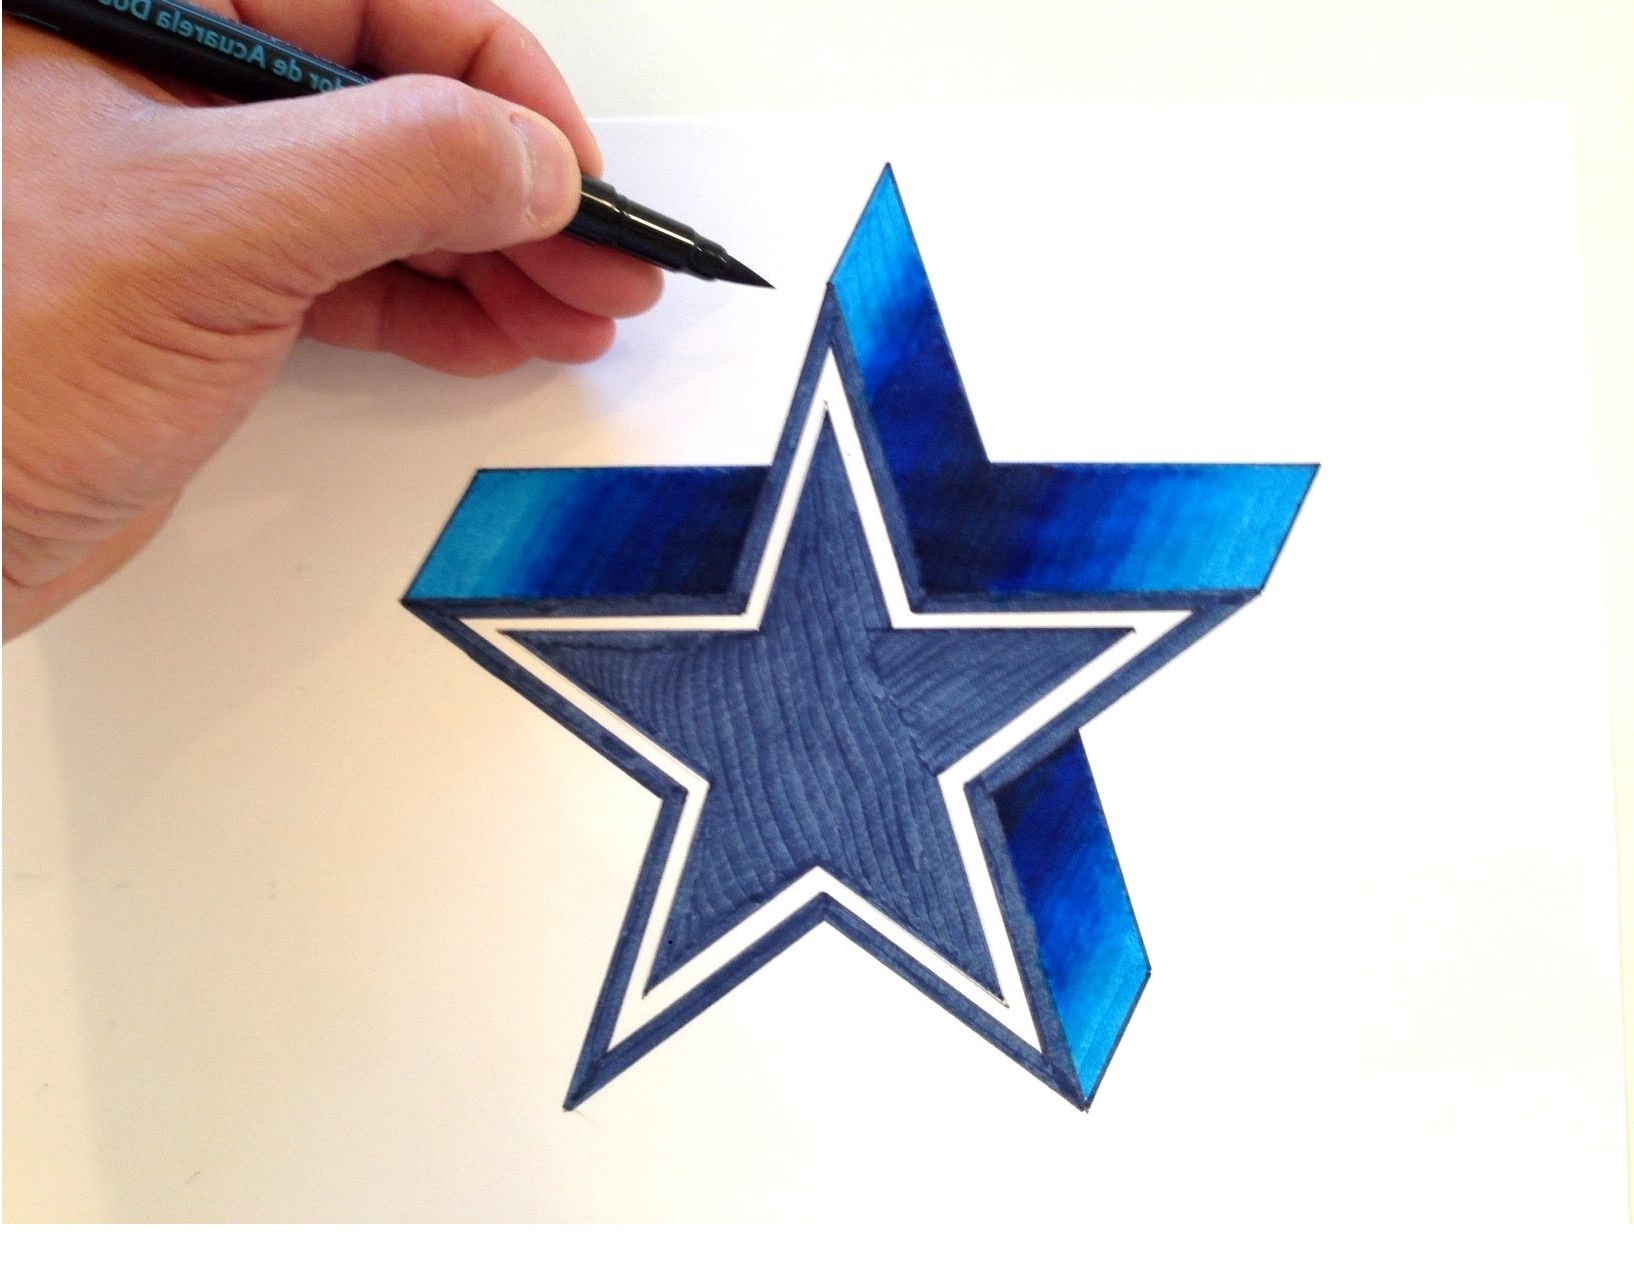 1634x1278 Pencil Drawings 3d Stars How To Draw The Dallas Cowboys Logo In 3d